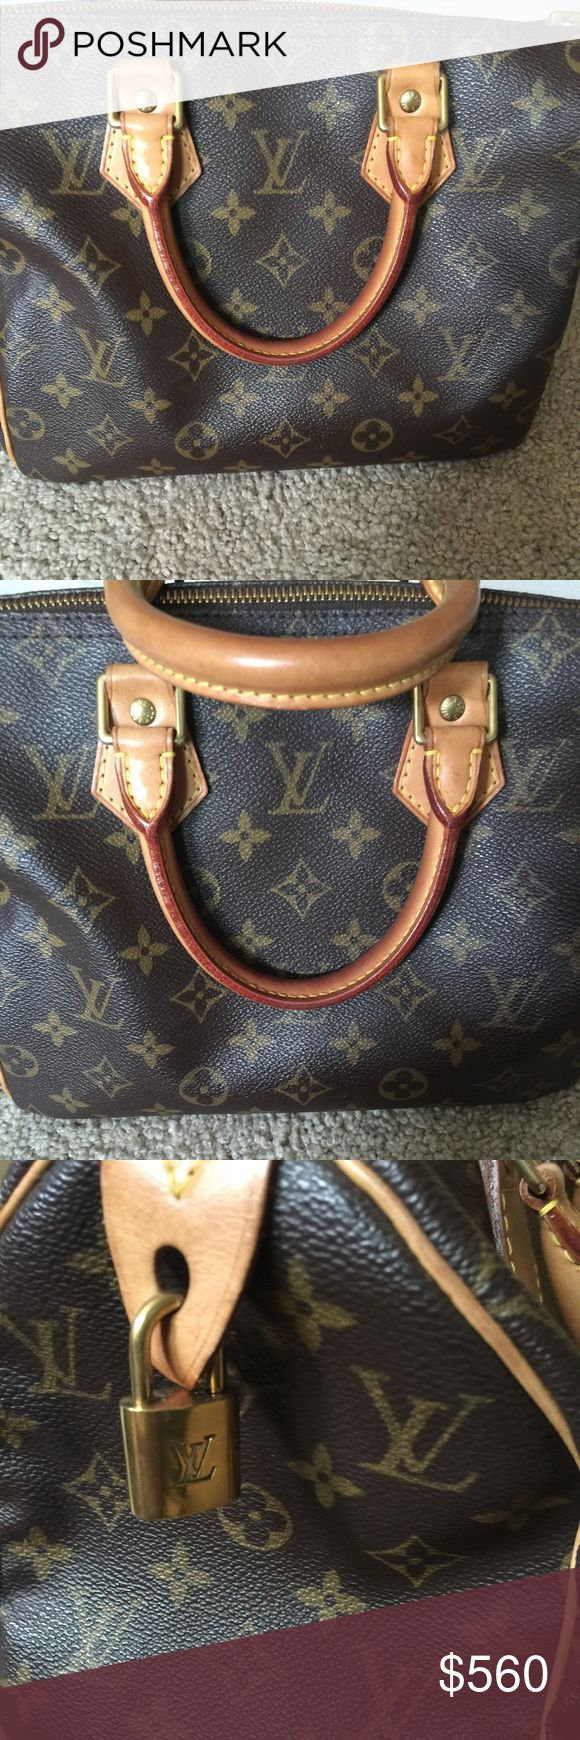 👜Louis Vuitton Speedy 25 ✨✨ Beautiful LV Speedy 25 in immaculate condition. This bag has been well taken care of. This bag comes with dust bag and box. No tears, marks or flaws inside nor outside. Code SP1929. Louis Vuitton Bags Totes